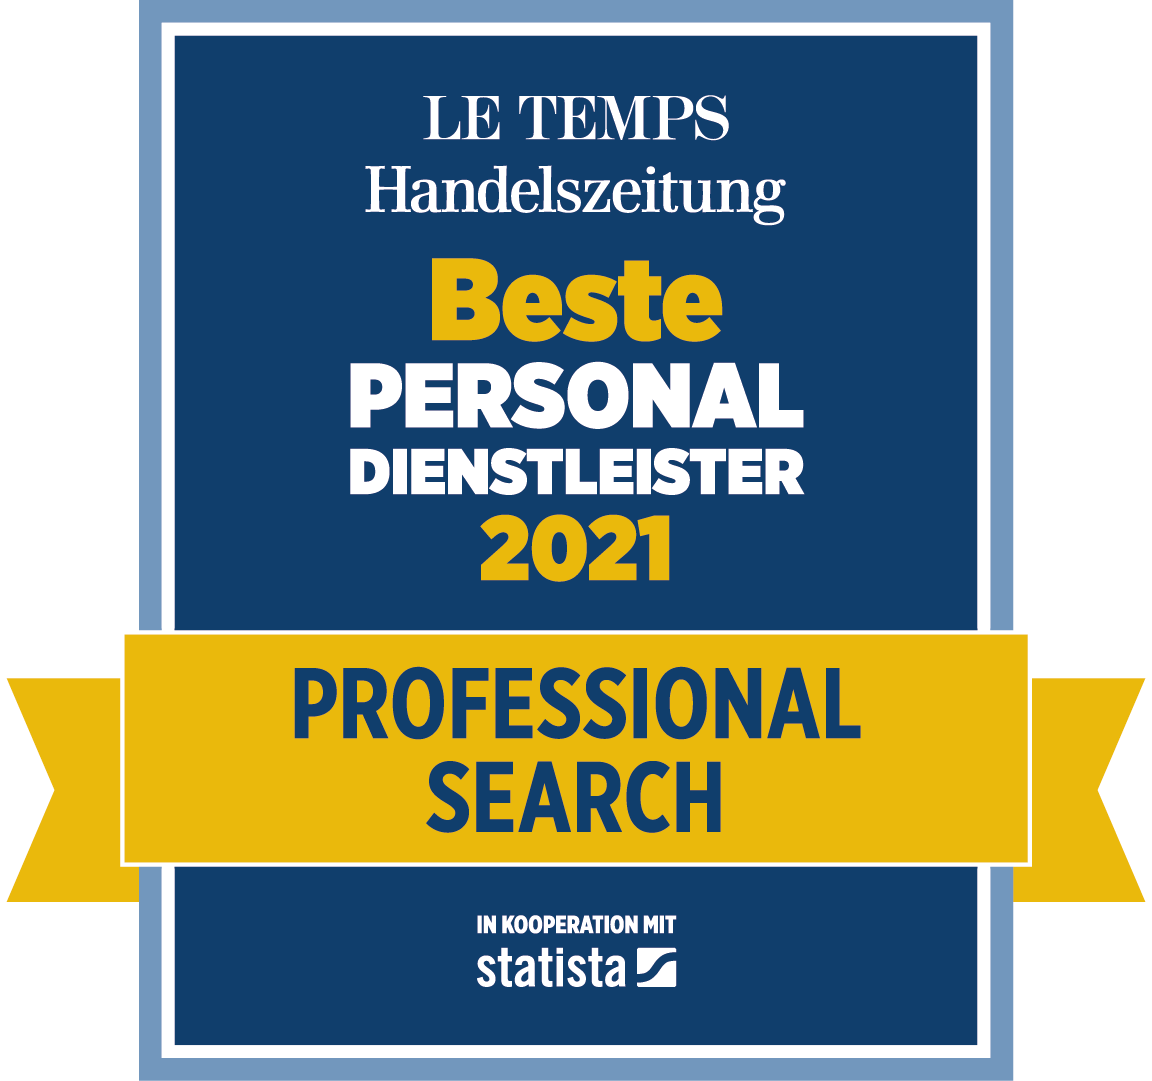 Beste Personaldienstleister 2021 - Professional Search